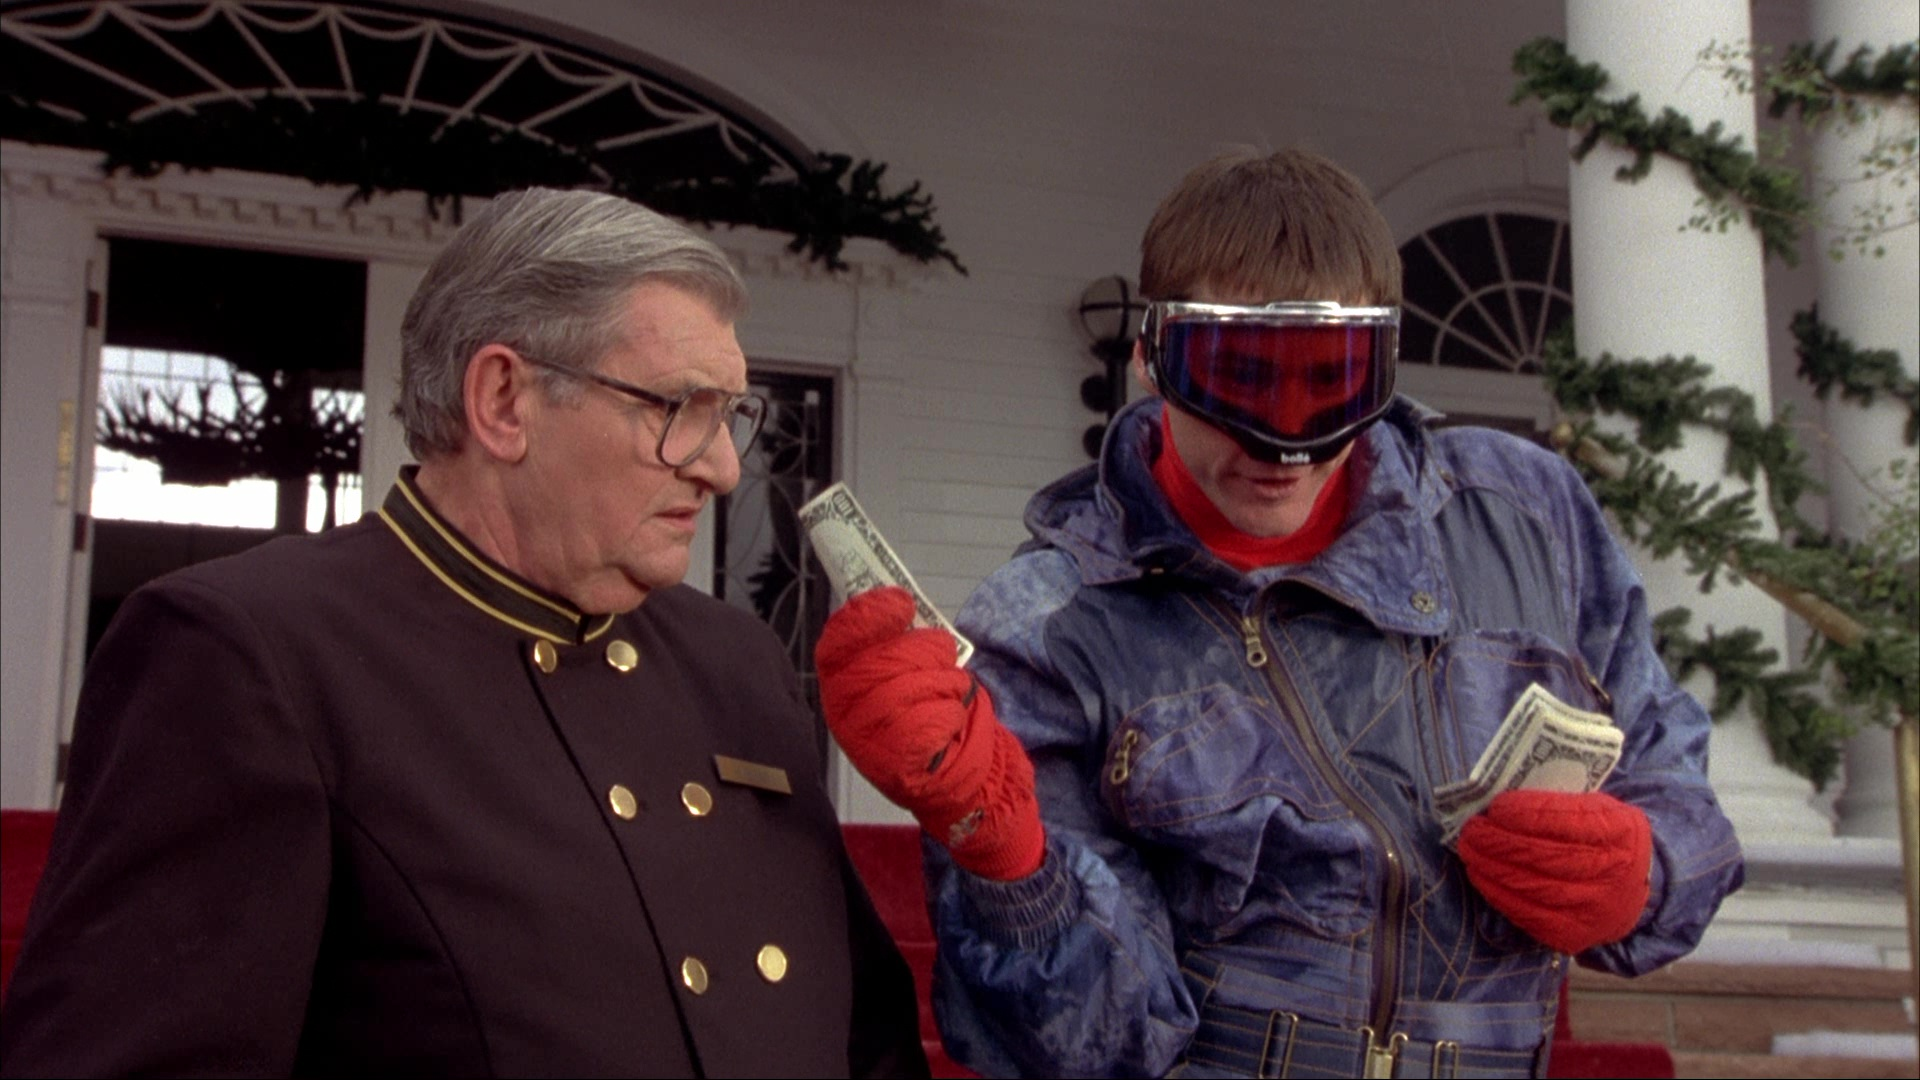 Bolle Ski Goggles Worn by Jim Carrey in Dumb and Dumber